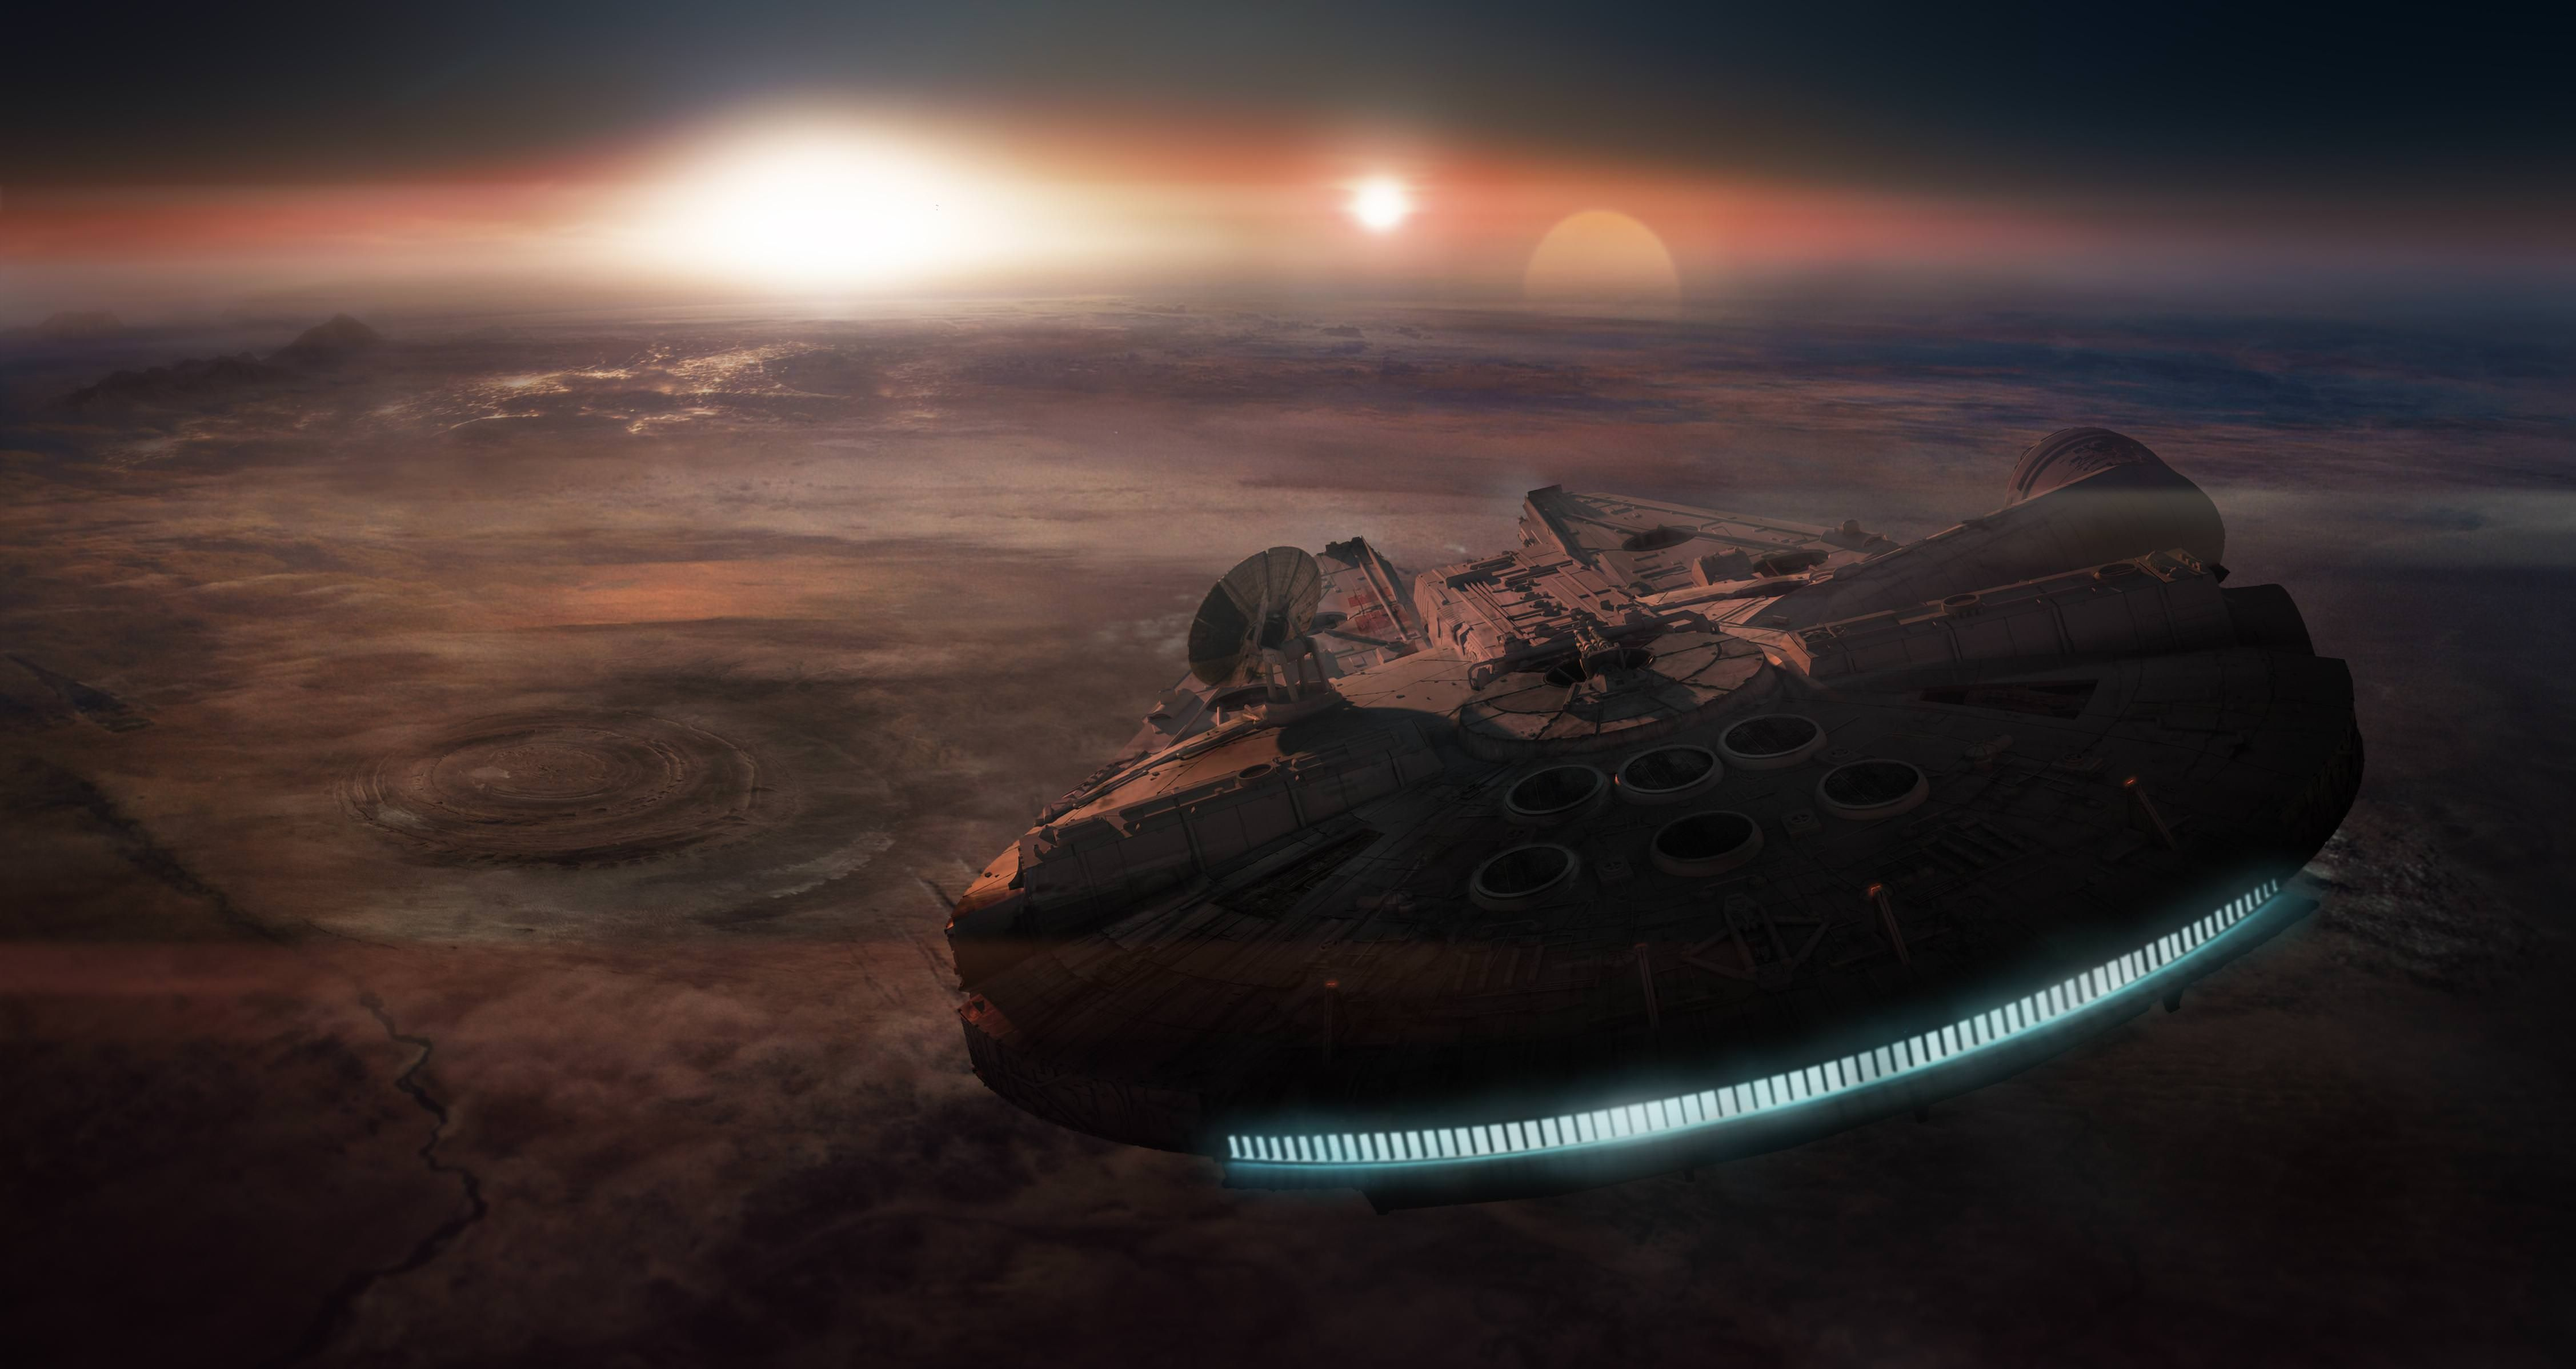 20 Of High Definition Star Wars Wallpapers Hd Digital Wallpaper Star Wars Wallpaper Star Wars